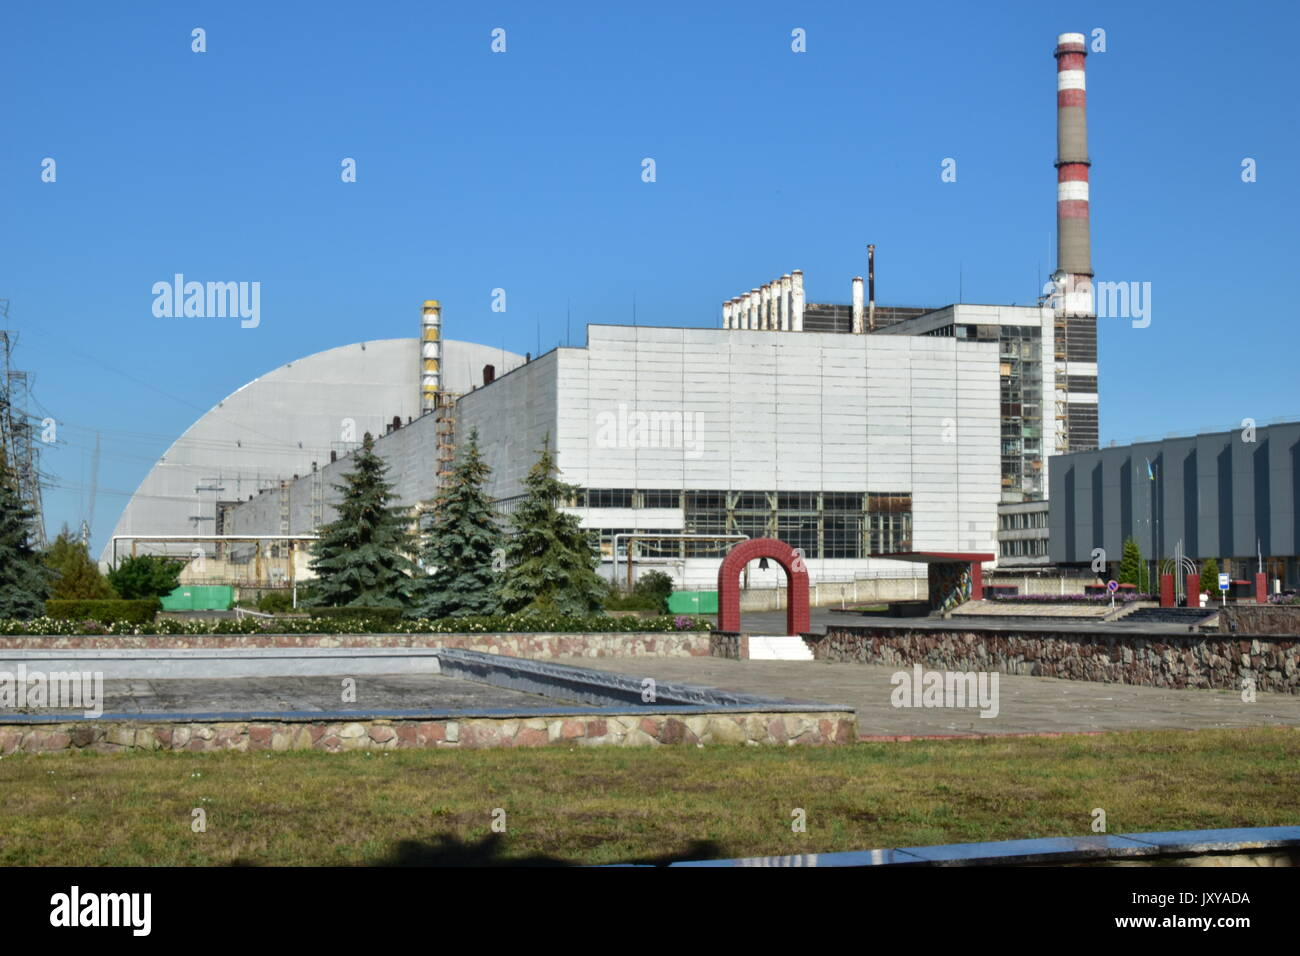 chernobyl ukraine nuclear power plant On april 26, 1986, the world's worst nuclear power plant accident occurs at the chernobyl nuclear power station in the soviet union on this day in 1986, the world's worst nuclear accident to date occurs at the chernobyl nuclear plant near kiev in ukraine.